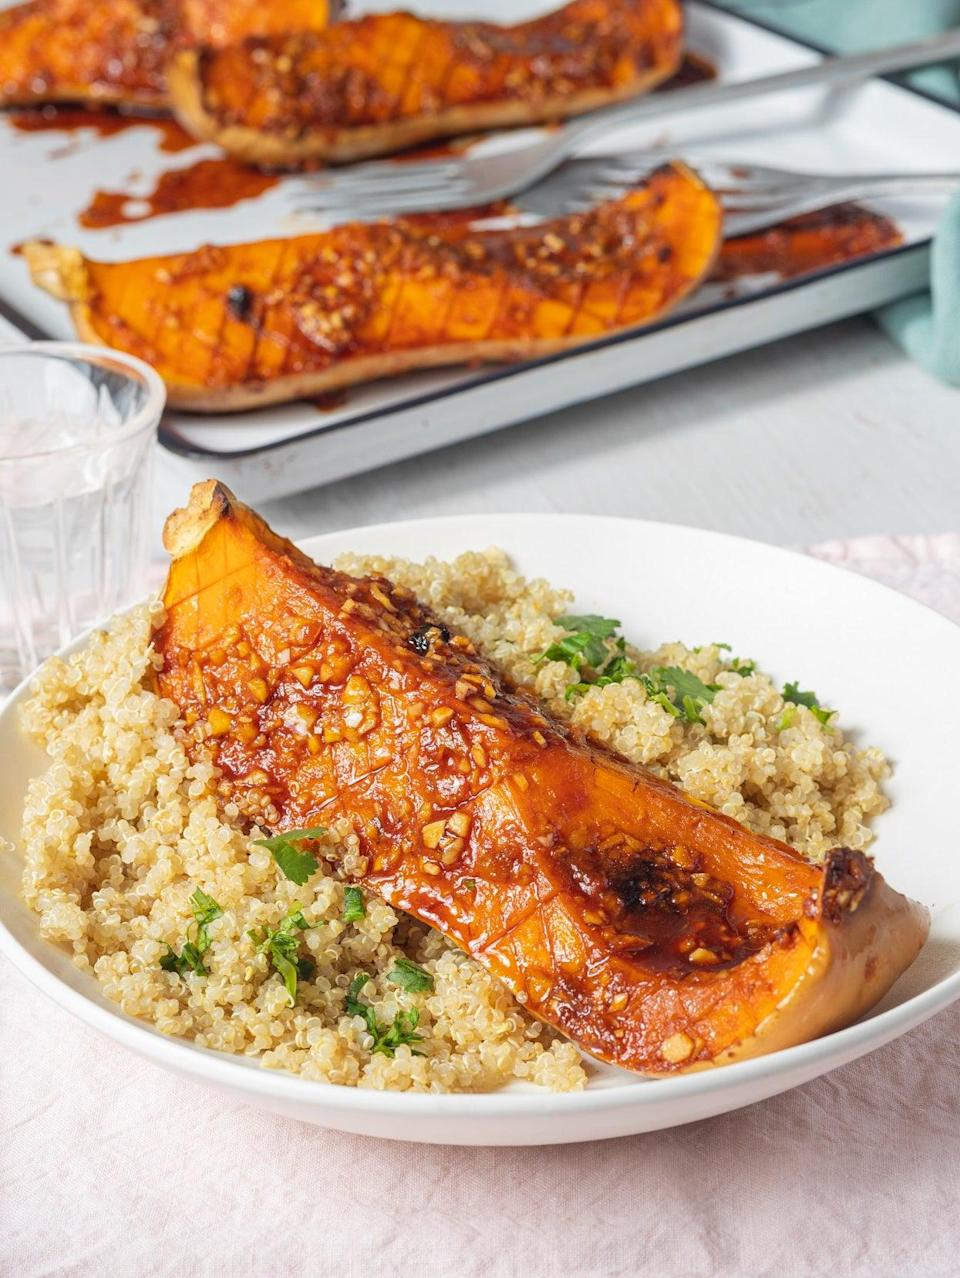 This butternut squash and quinoa dish makes for a perfect healthy dinner (Lee Kum Kee - Jeremy Pang)